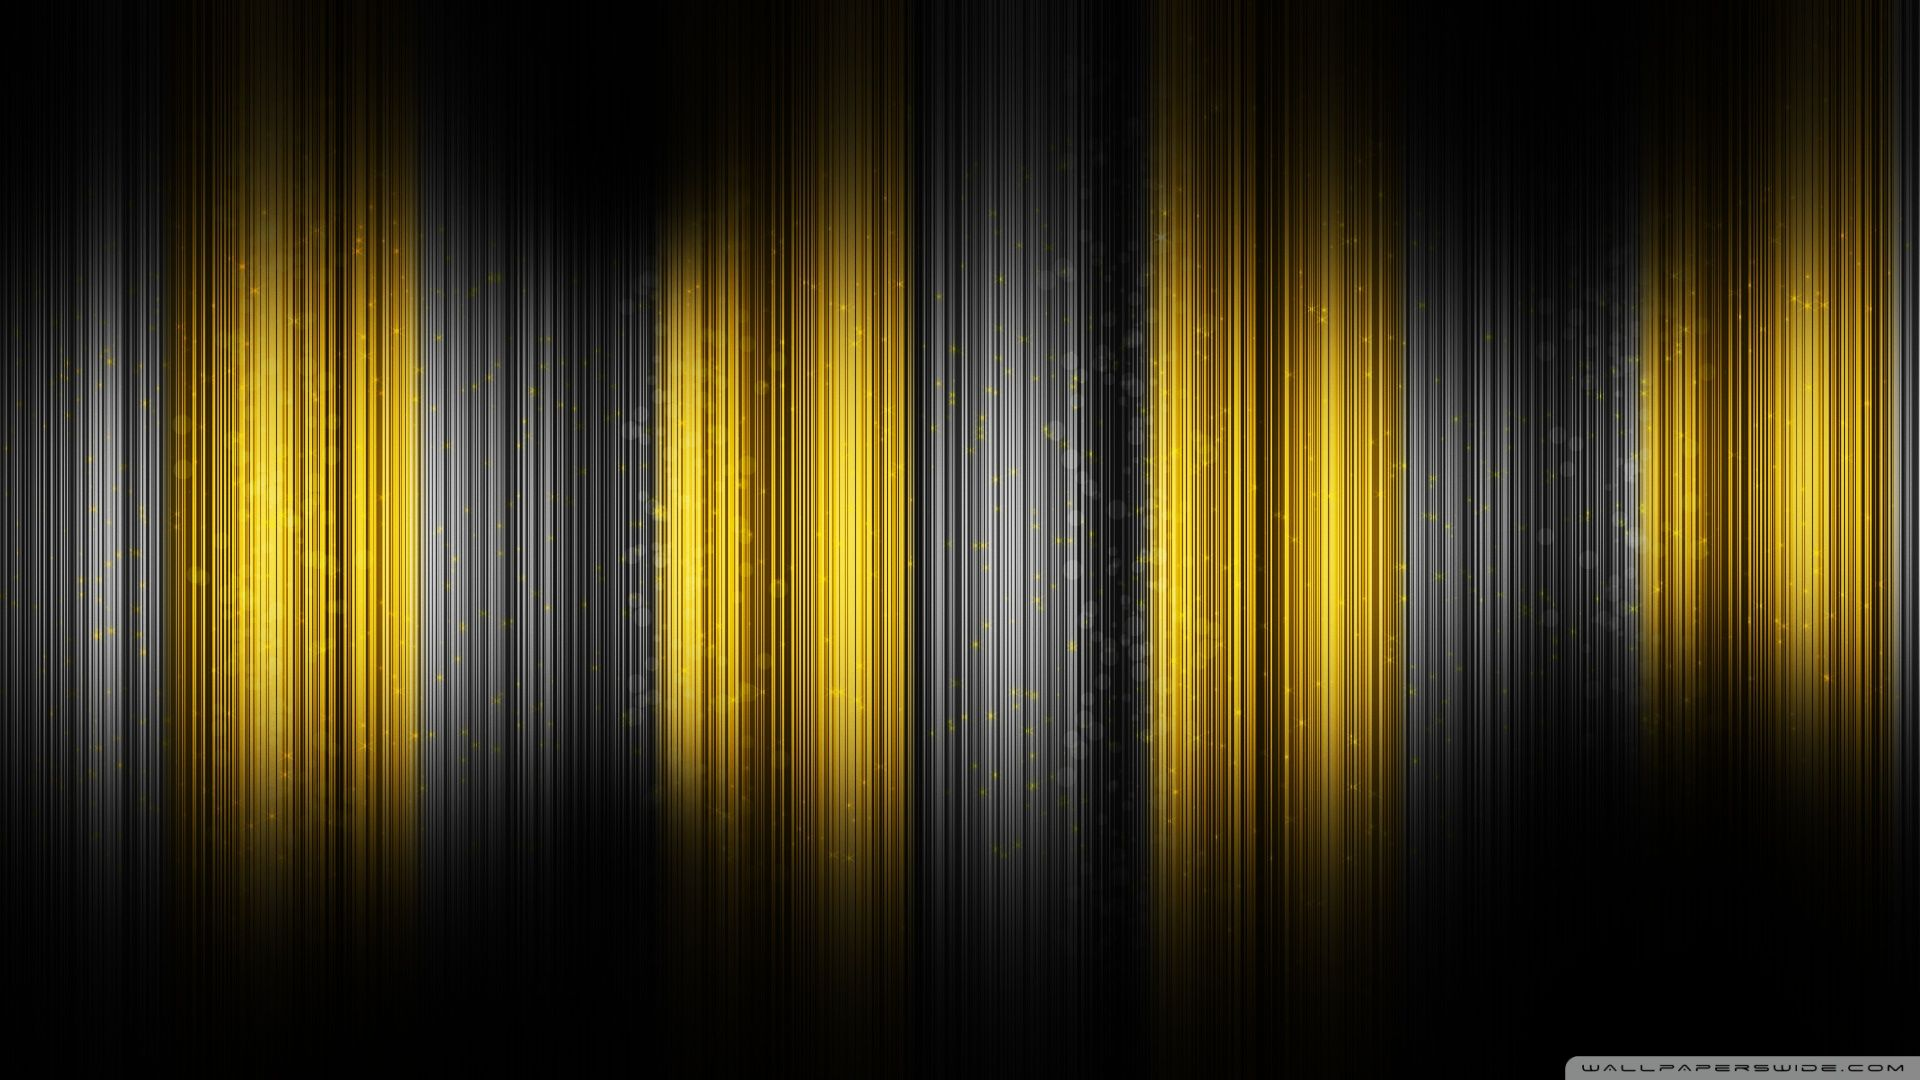 Yellow Abstract Wallapper Wallpaper Hd Gold Abstract Wallpaper Black Background Wallpaper Black Abstract Background